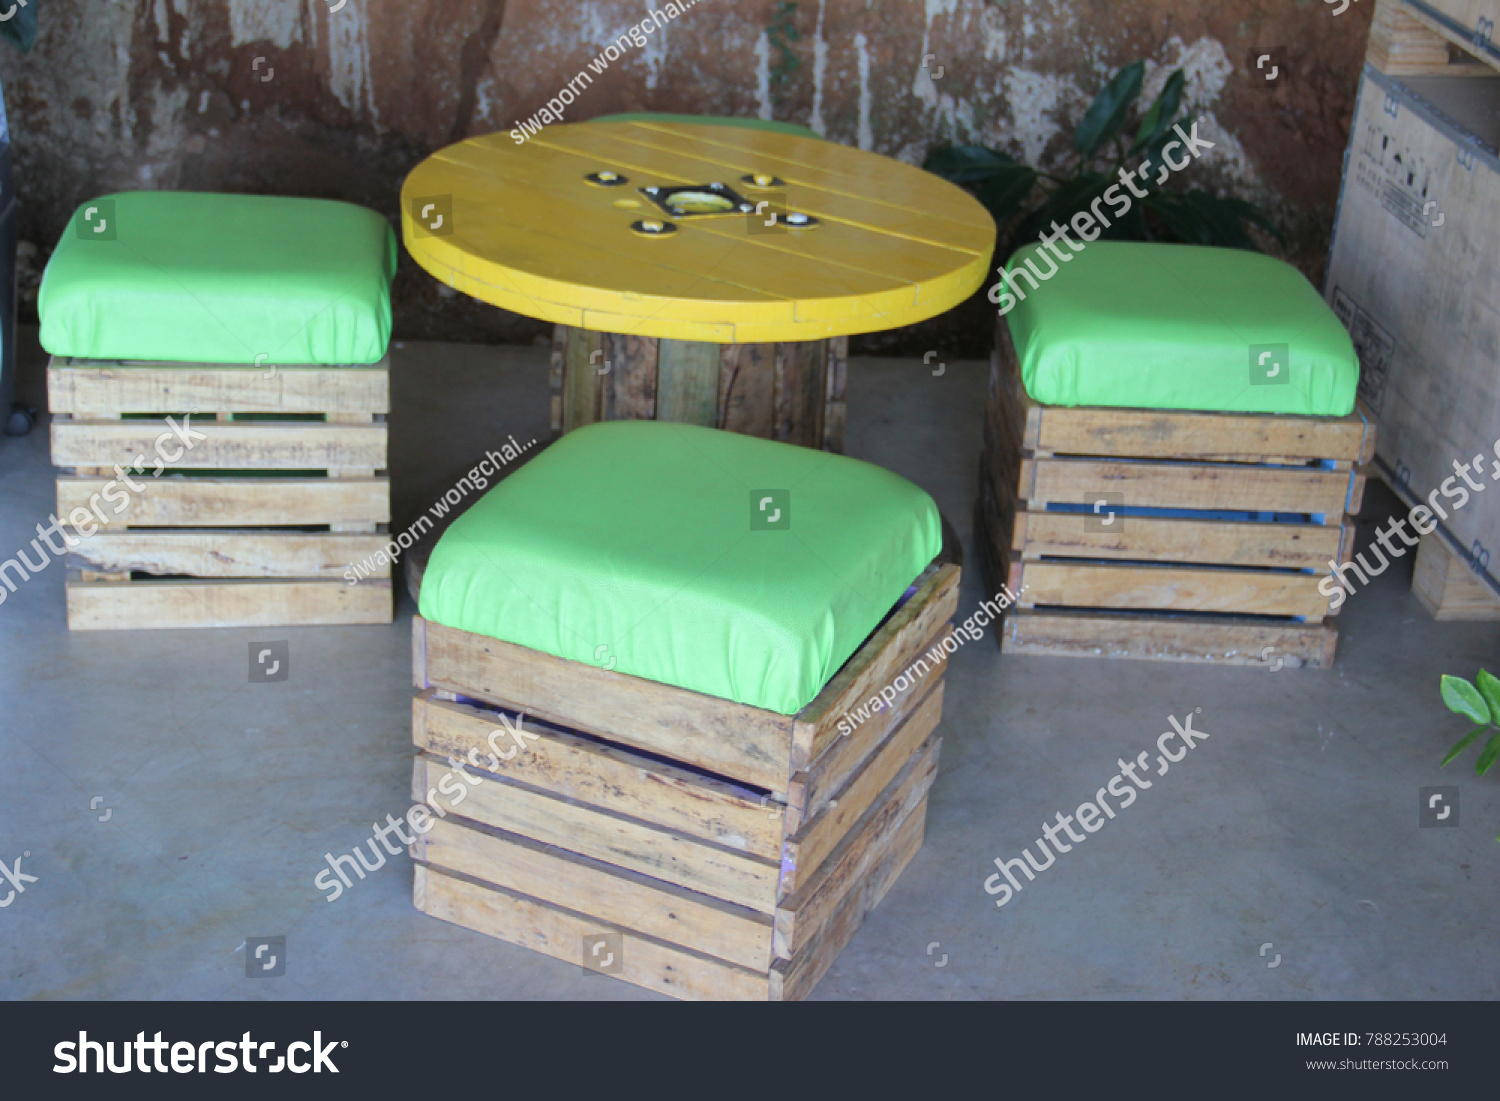 Picture of: Wooden Crate Furniture Diy Chair Cushion Stock Photo Edit Now 788253004